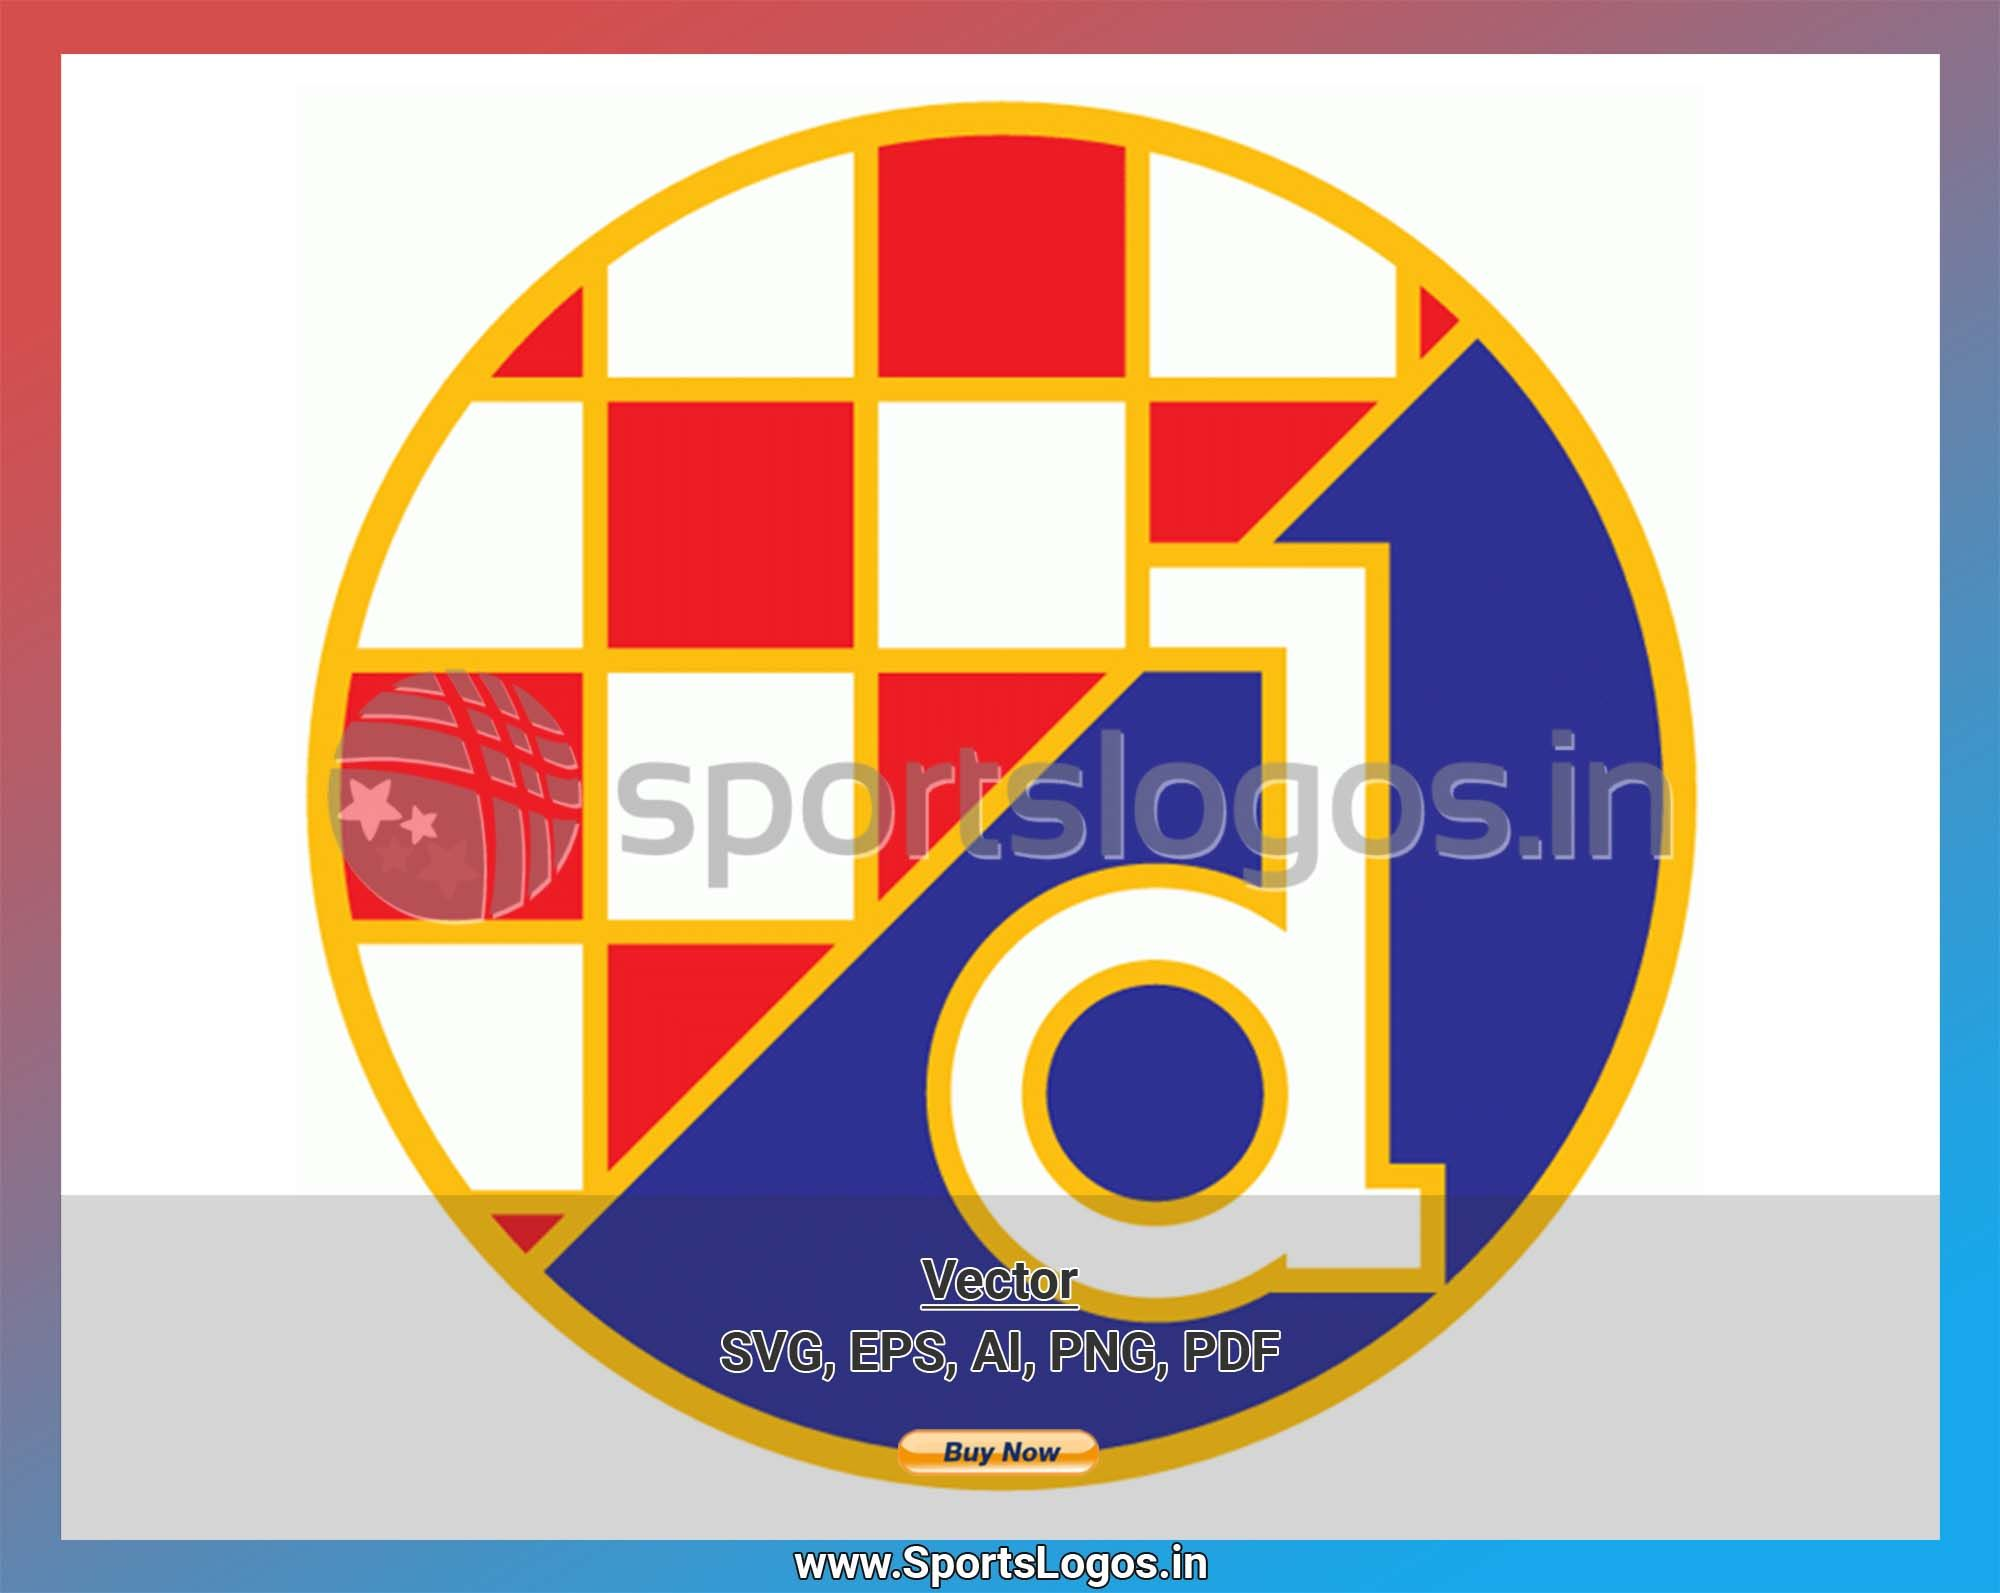 Gnk Dinamo Zagreb Soccer Sports Vector Svg Logo In 5 Formats Spln001620 Sports Logos Embroidery Vector For Nfl Nba Nhl Mlb Milb And More In 2020